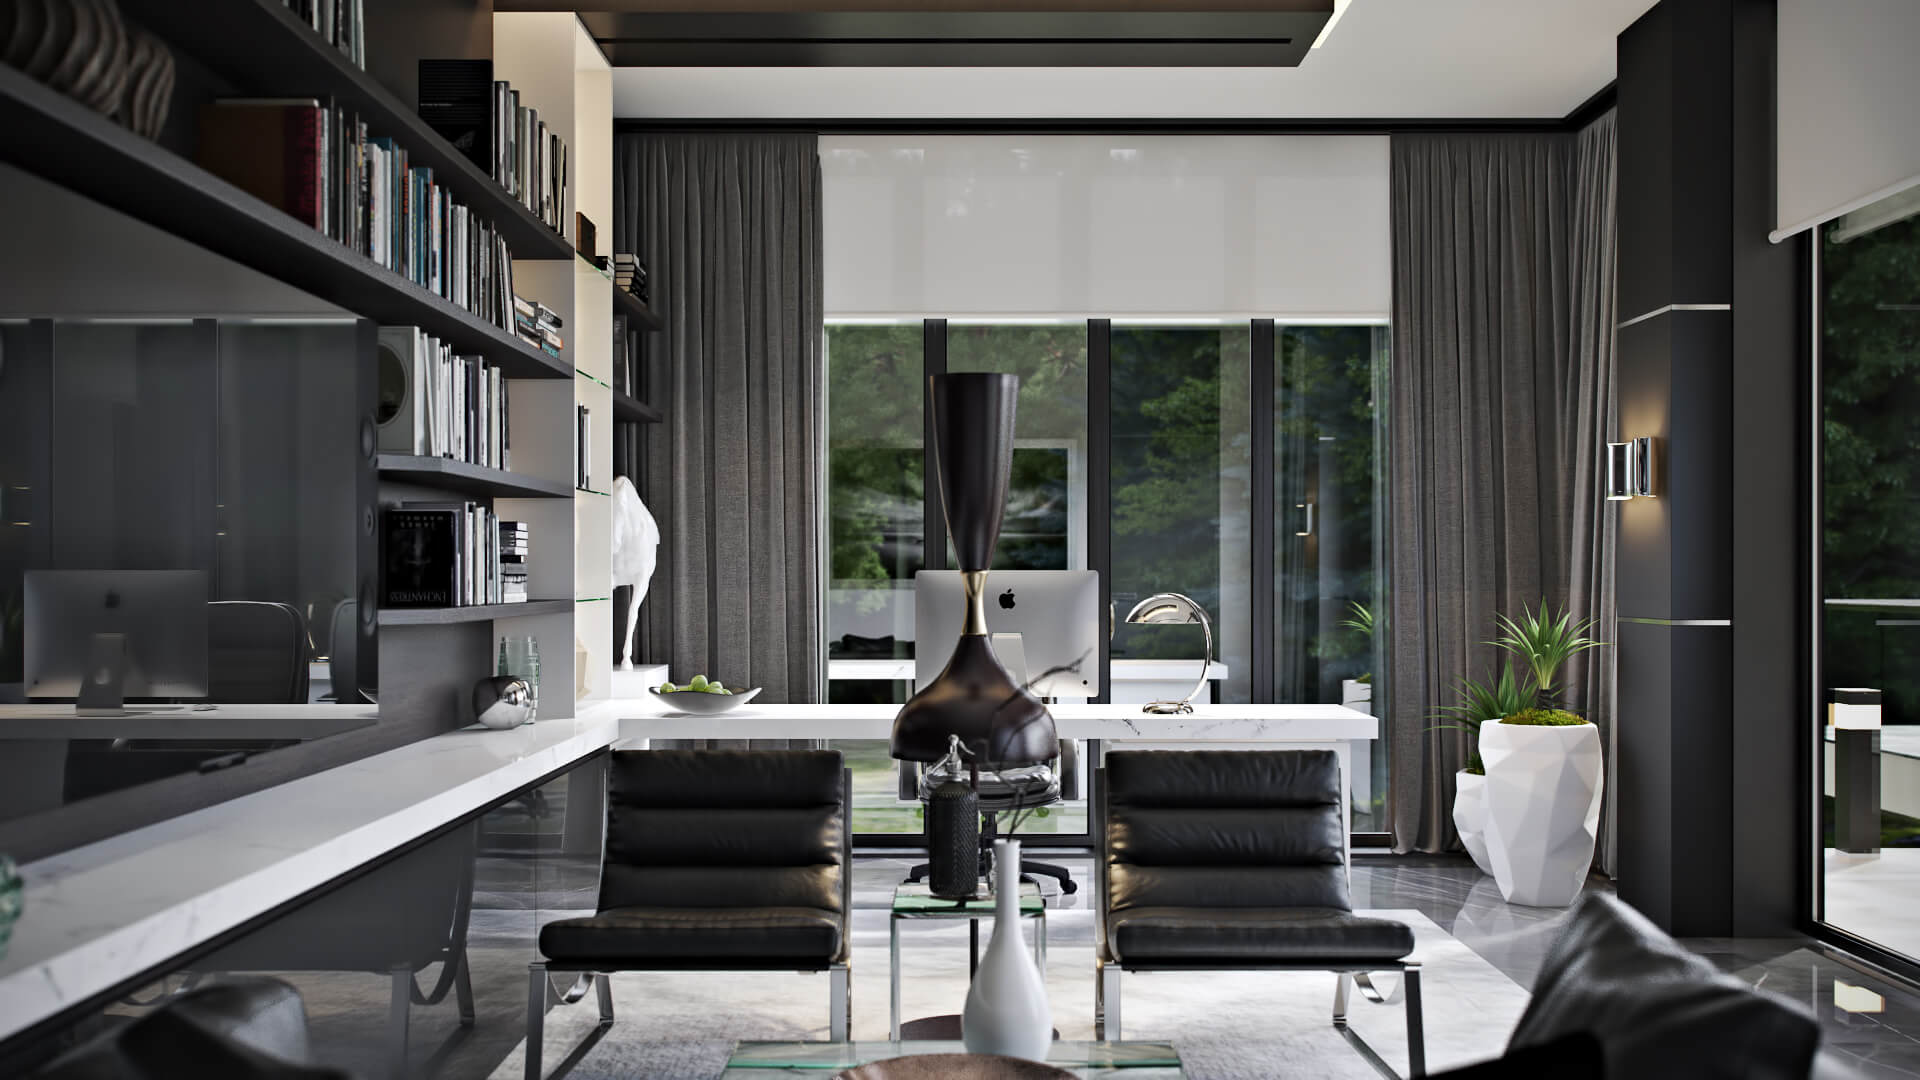 Splendid 3D Rendering Of A Home Office Interior Design View04